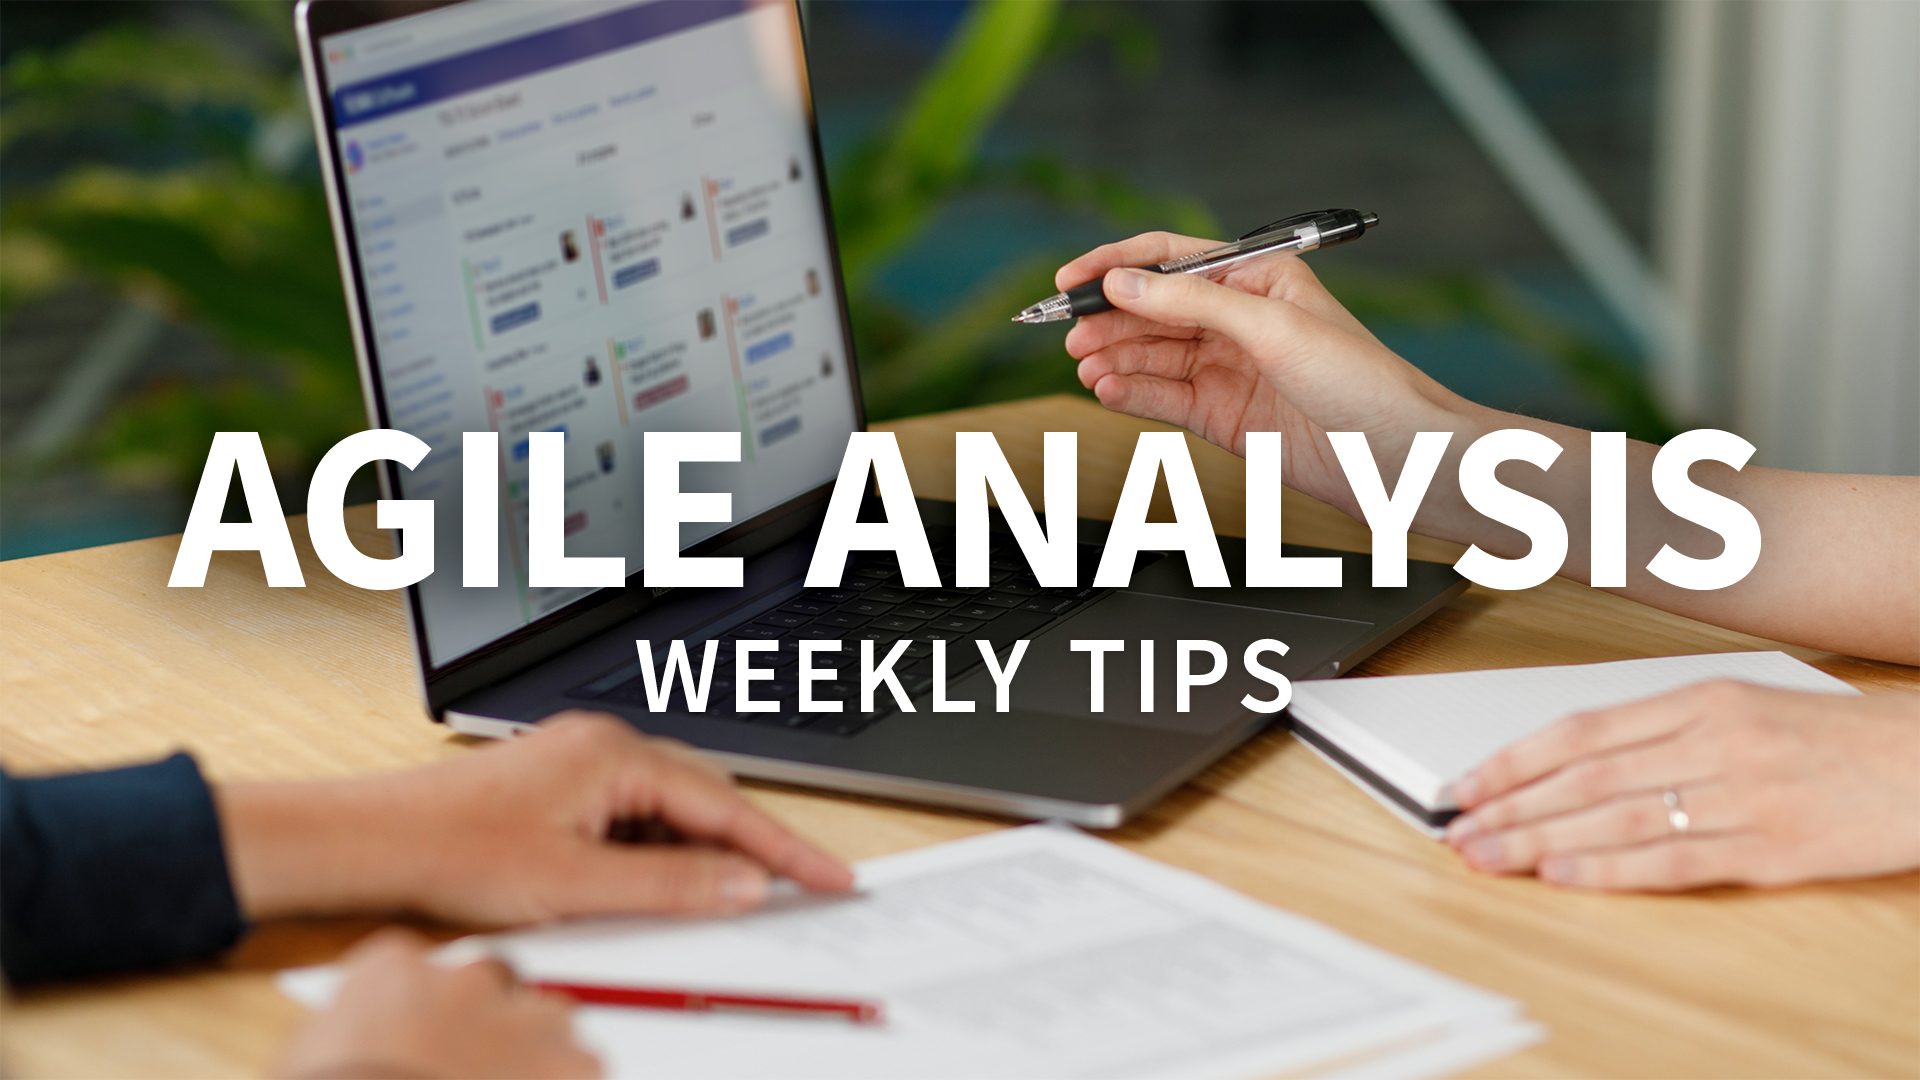 Working the scrum master relationship as a product owner: Agile Analysis Weekly Tips